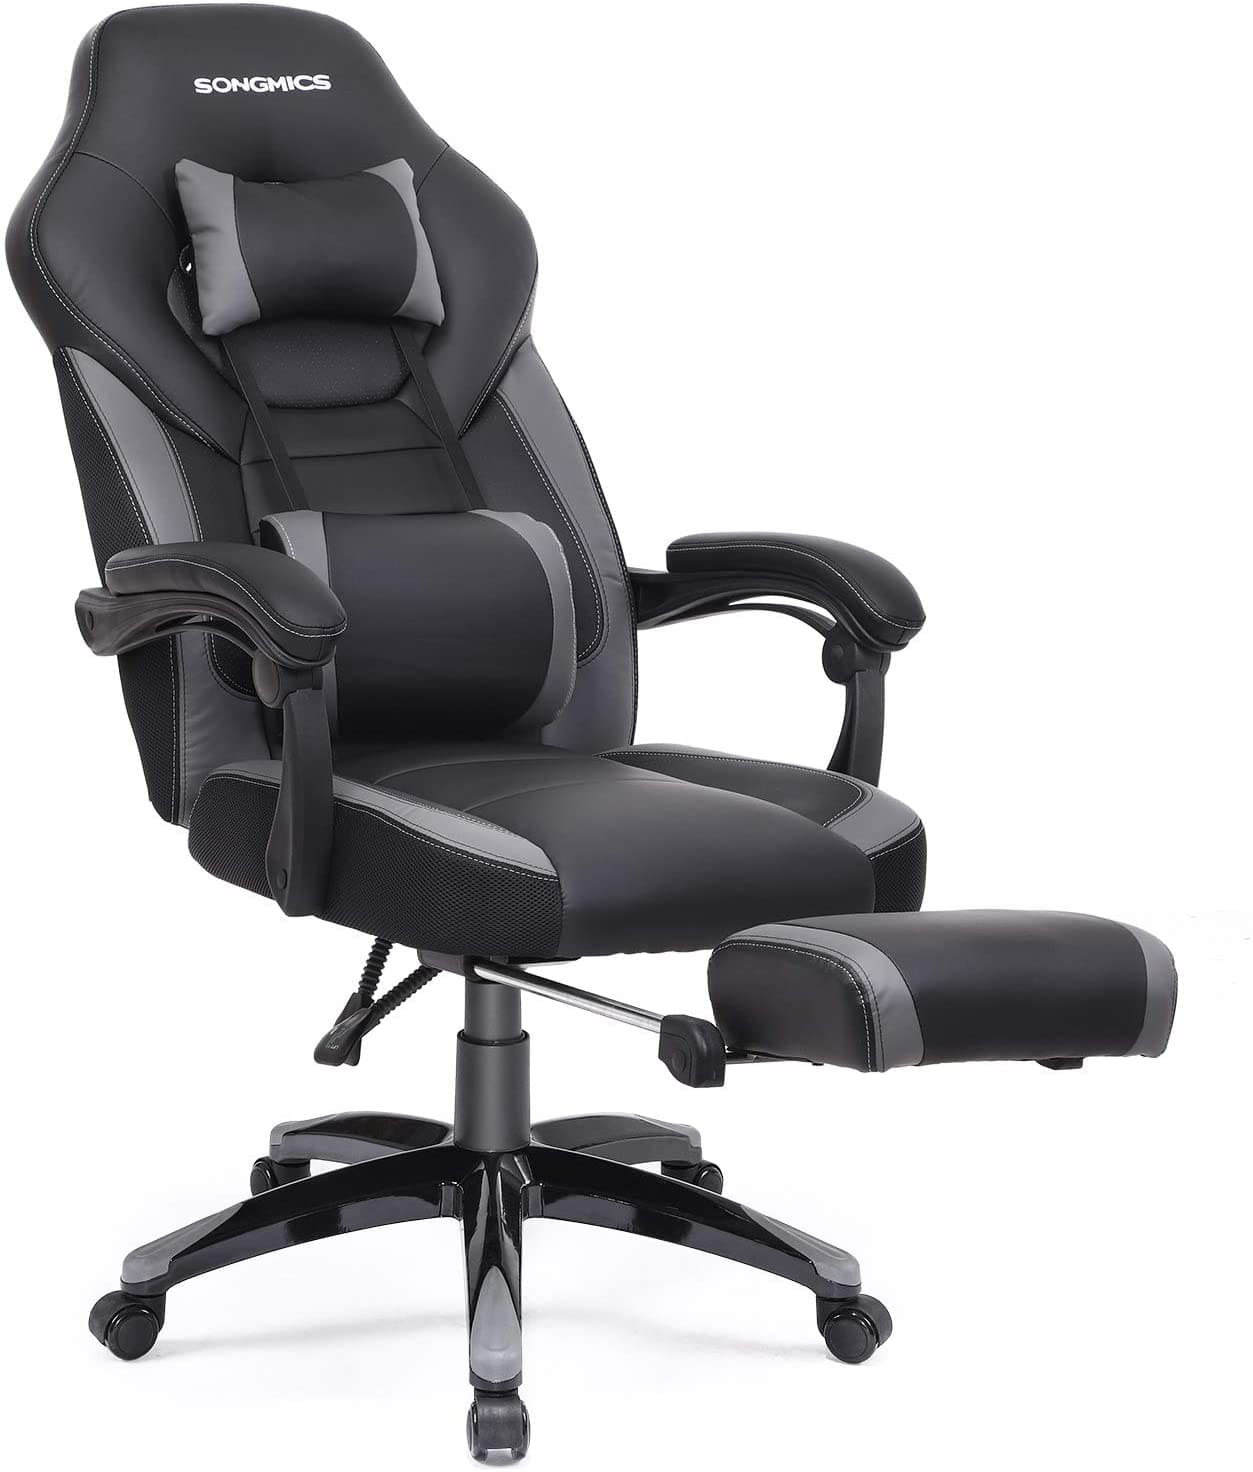 racing desk chair with footrest